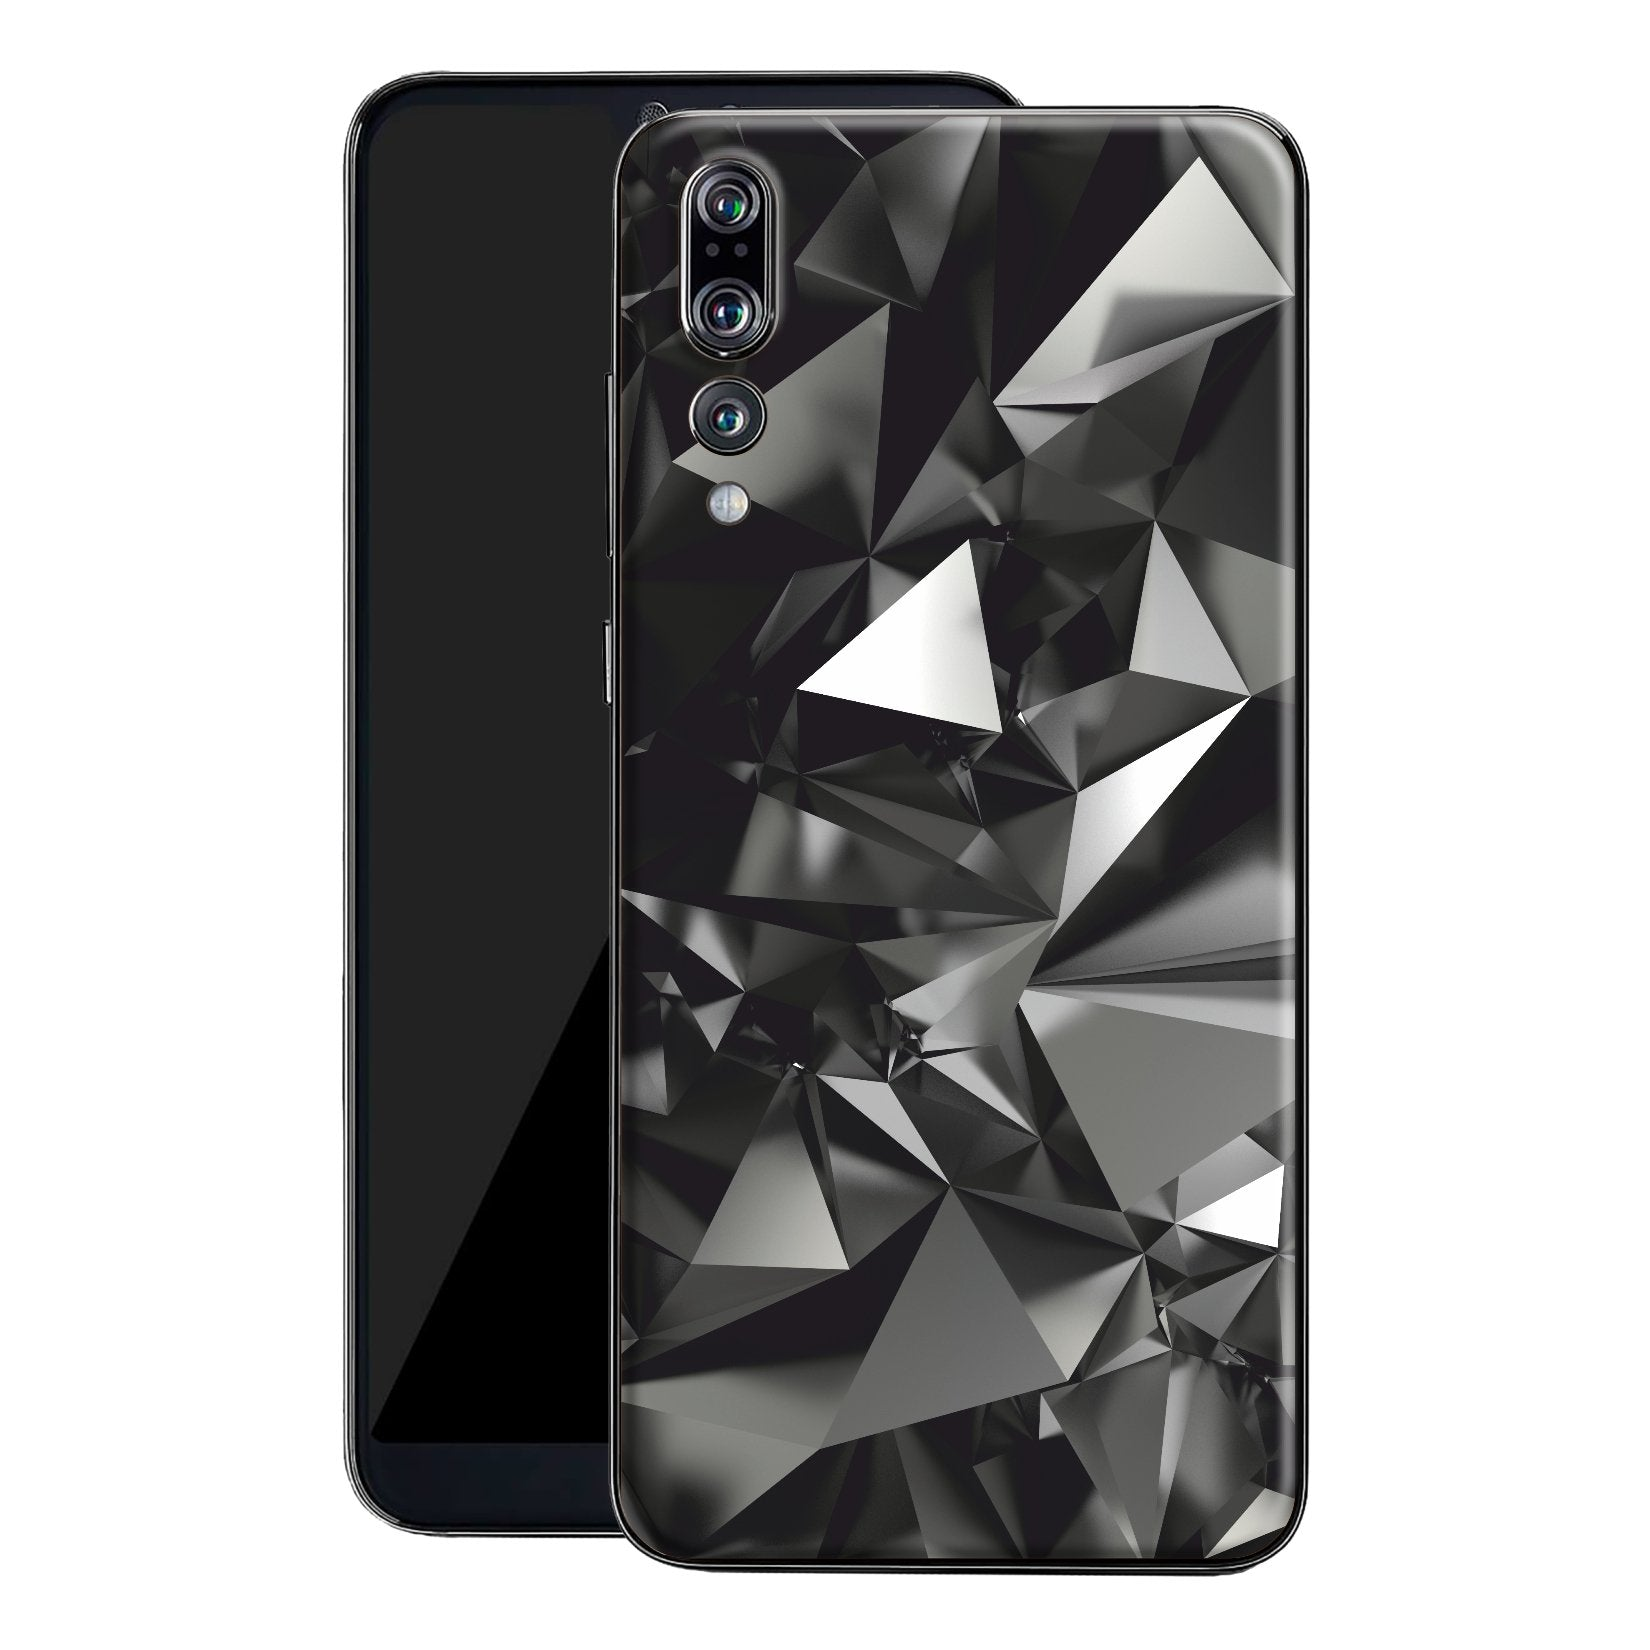 Huawei P20 PRO Print Custom Signature Black Crystals Skin Wrap Decal by EasySkinz